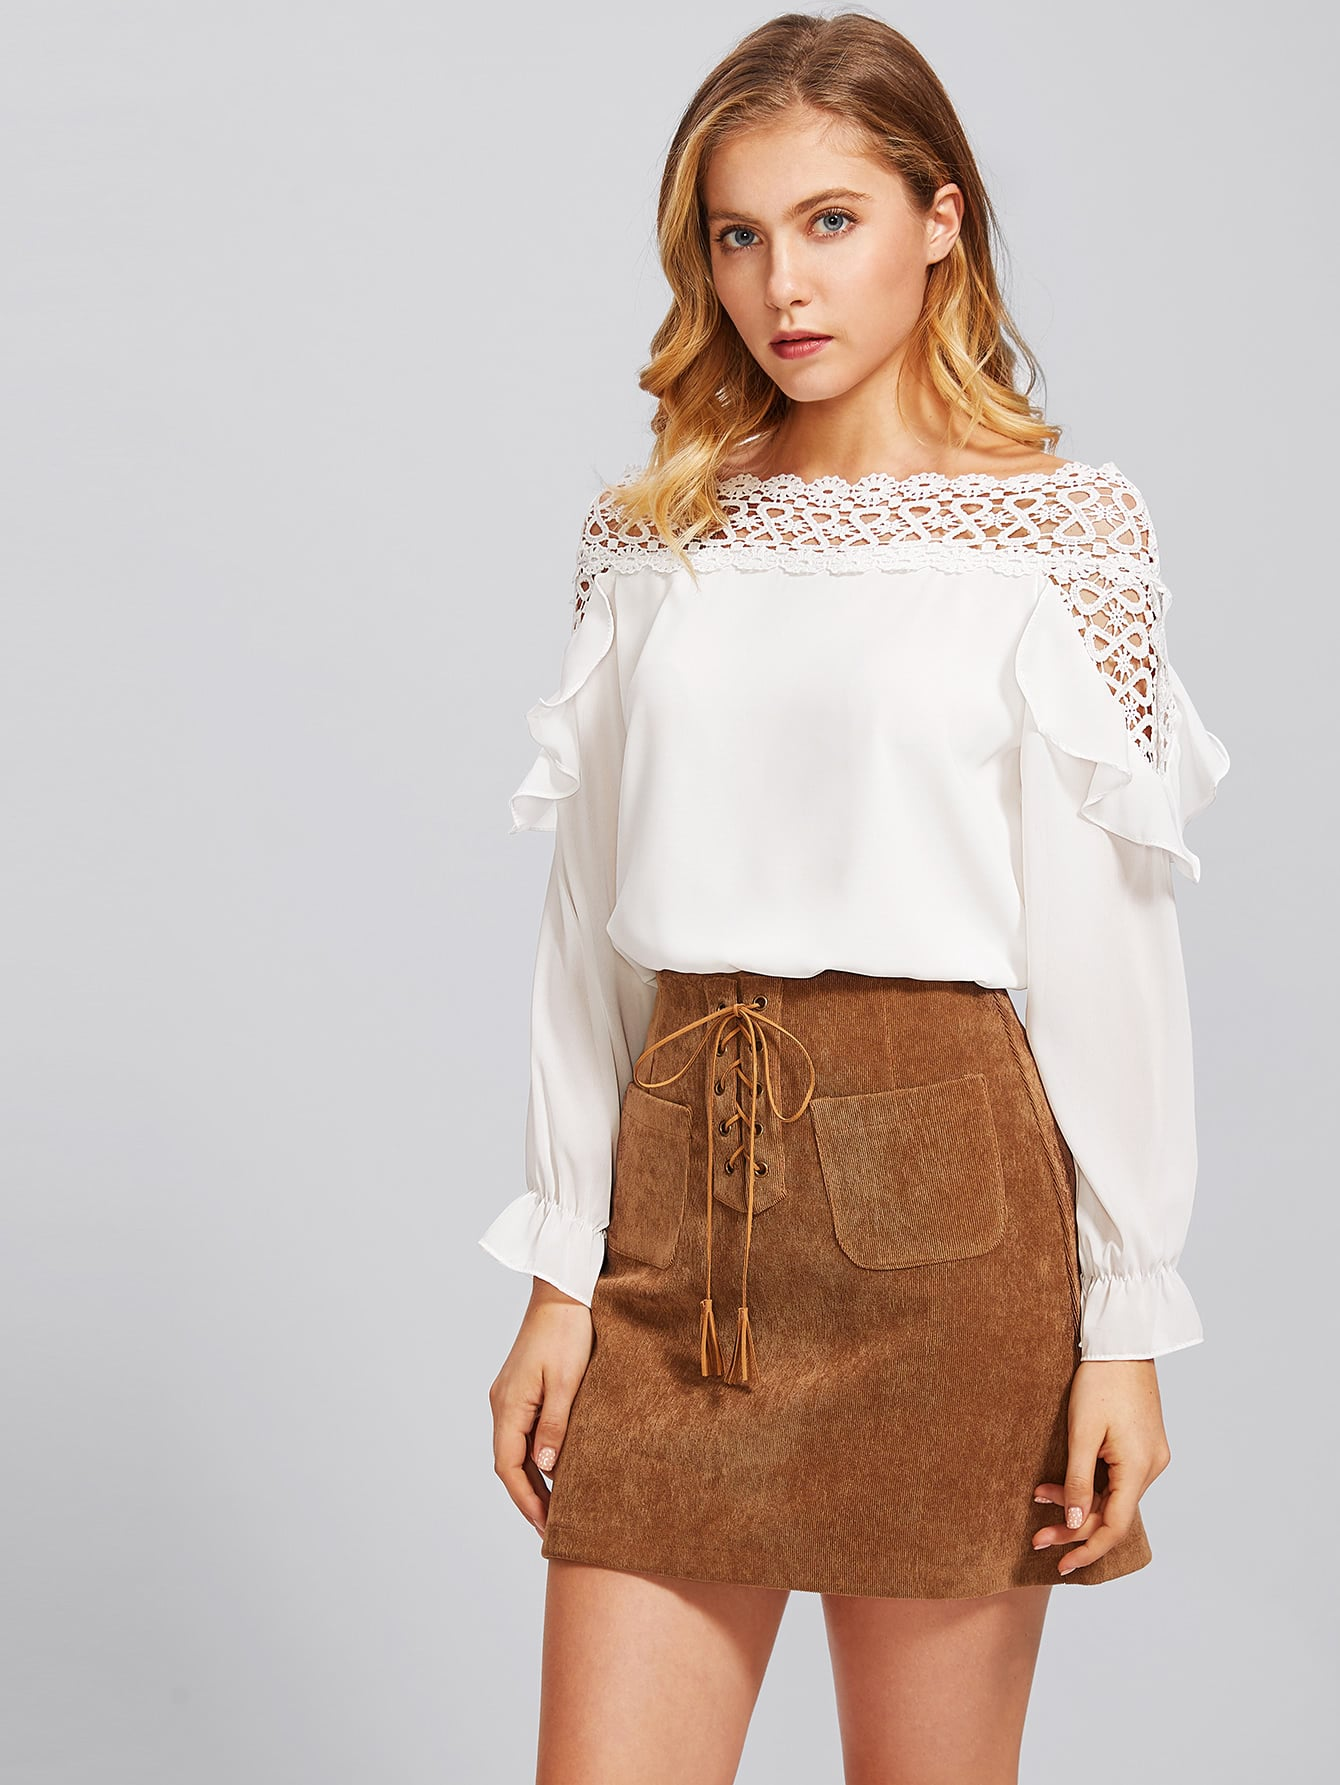 Hollow Out Crochet Insert Frill Top frill detail crochet insert embroidered mesh top